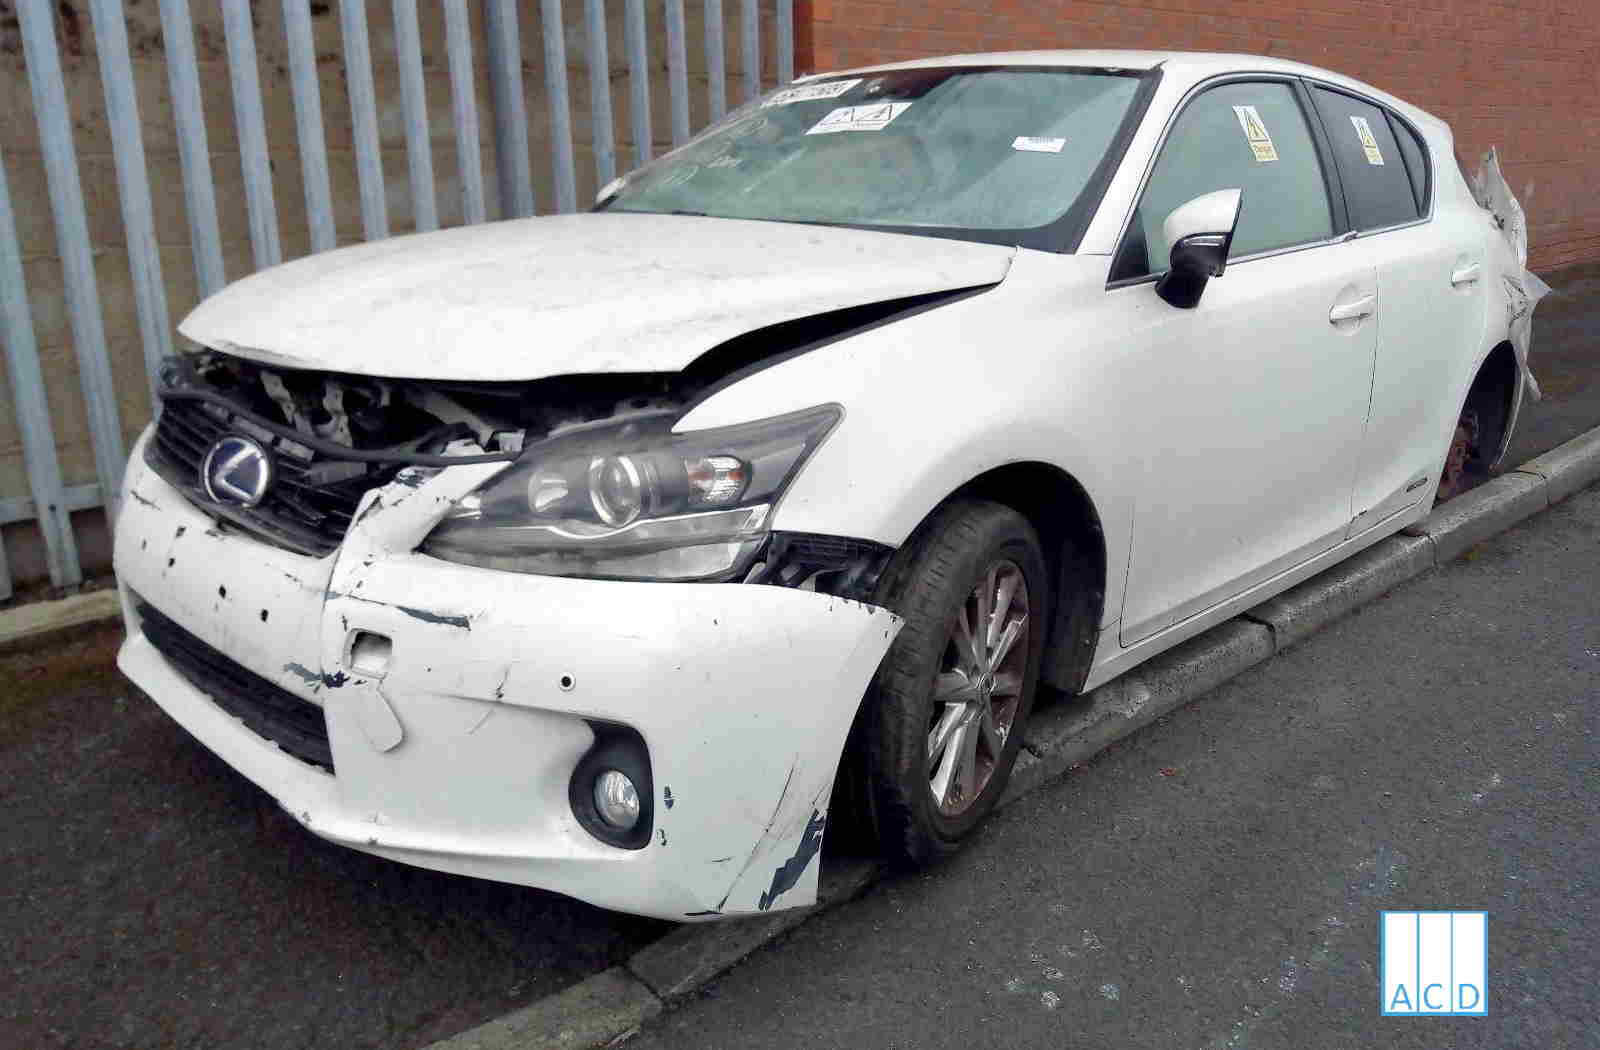 Lexus CT 200H SE 1.8L Hybrid 1 speed Automatic 2012 #3171 01